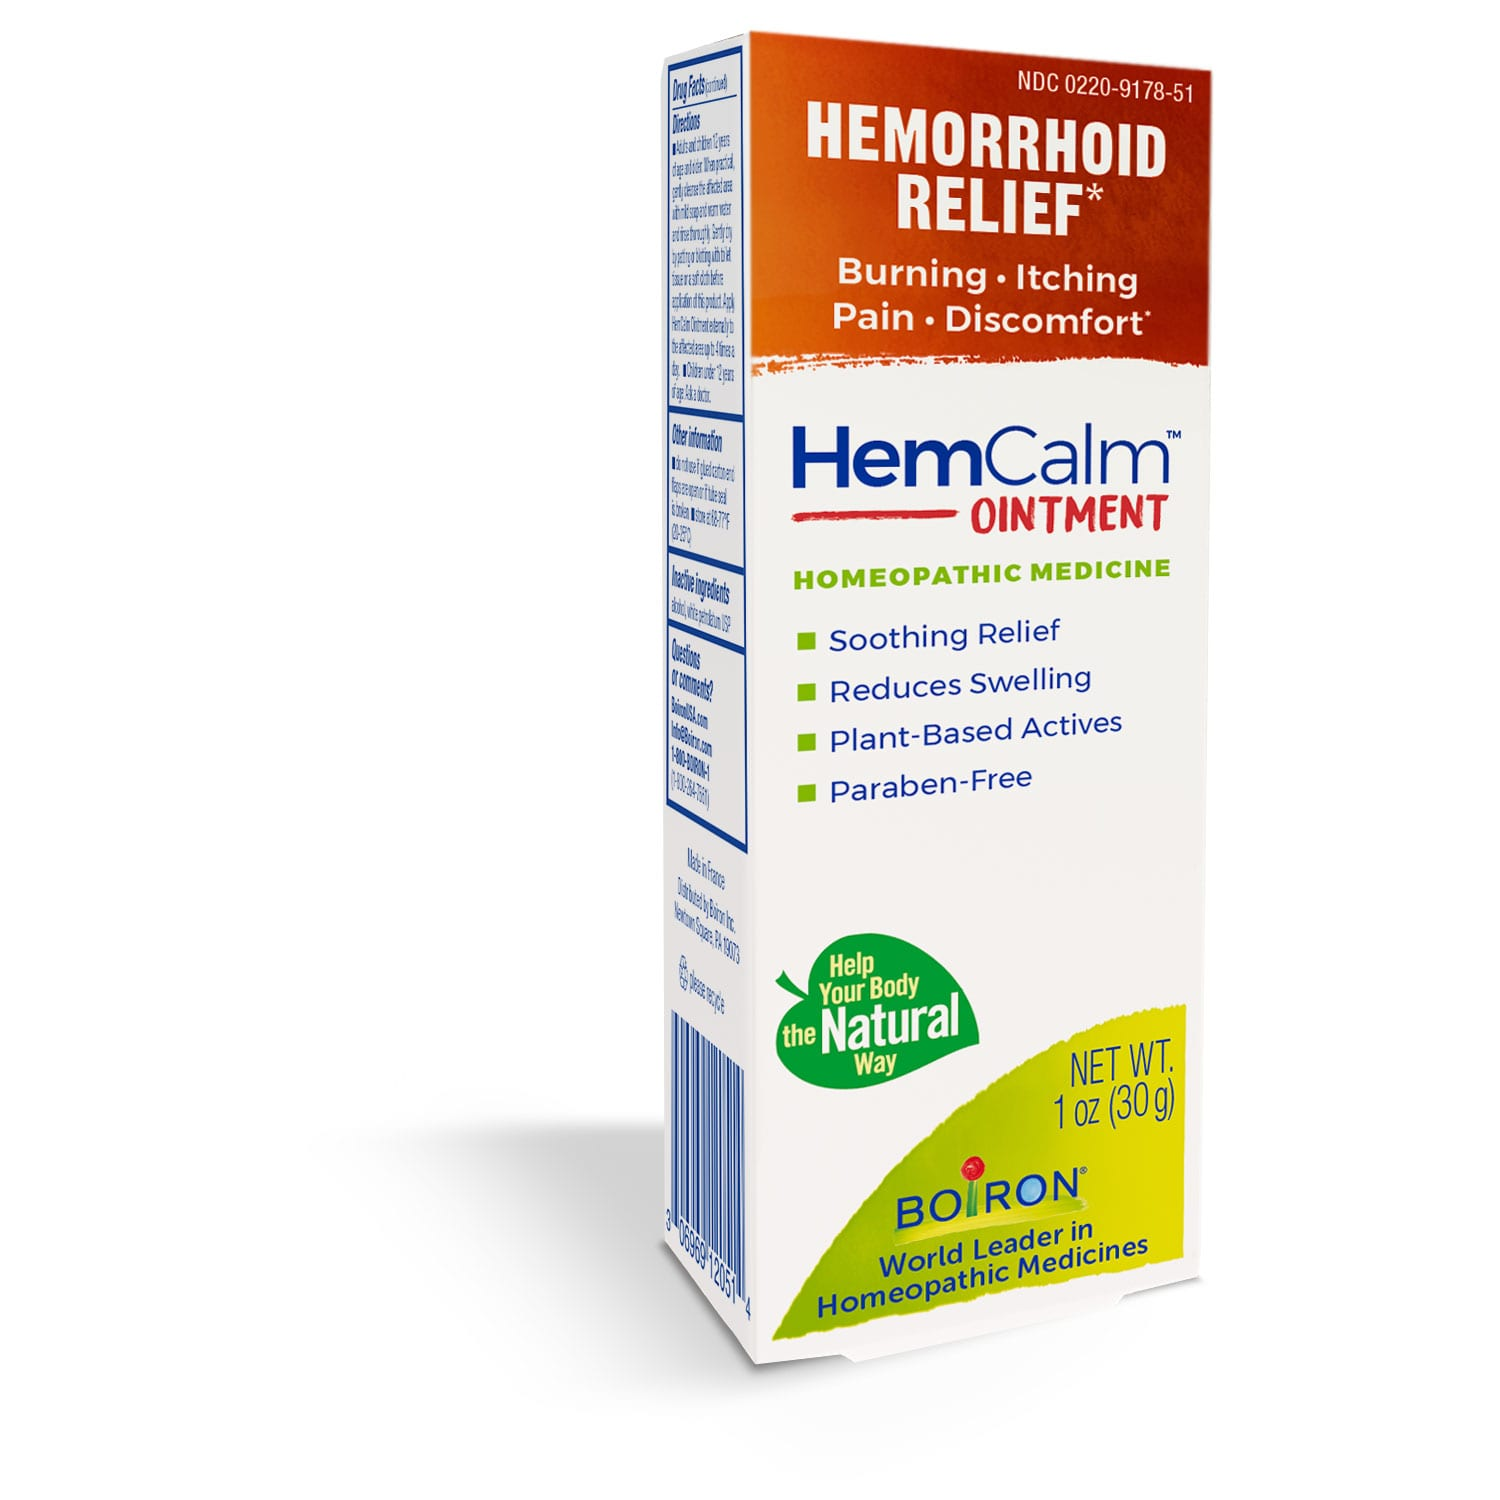 HemCalm<sup>®</sup> Ointment